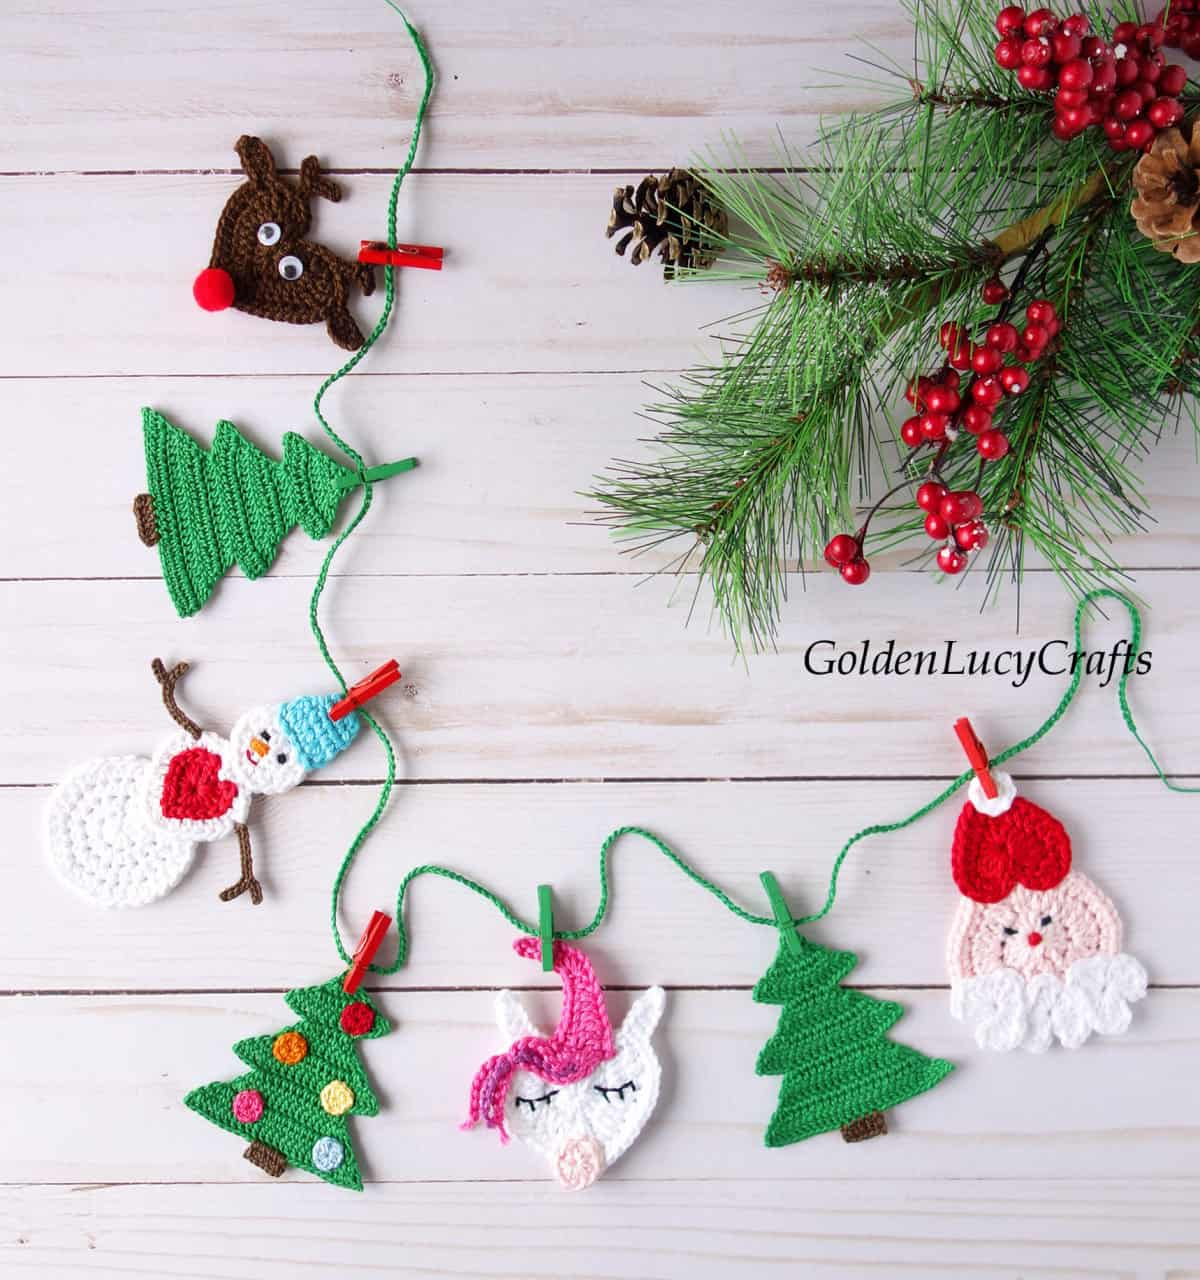 Crochet Christmas garland made from crocheted appliques.